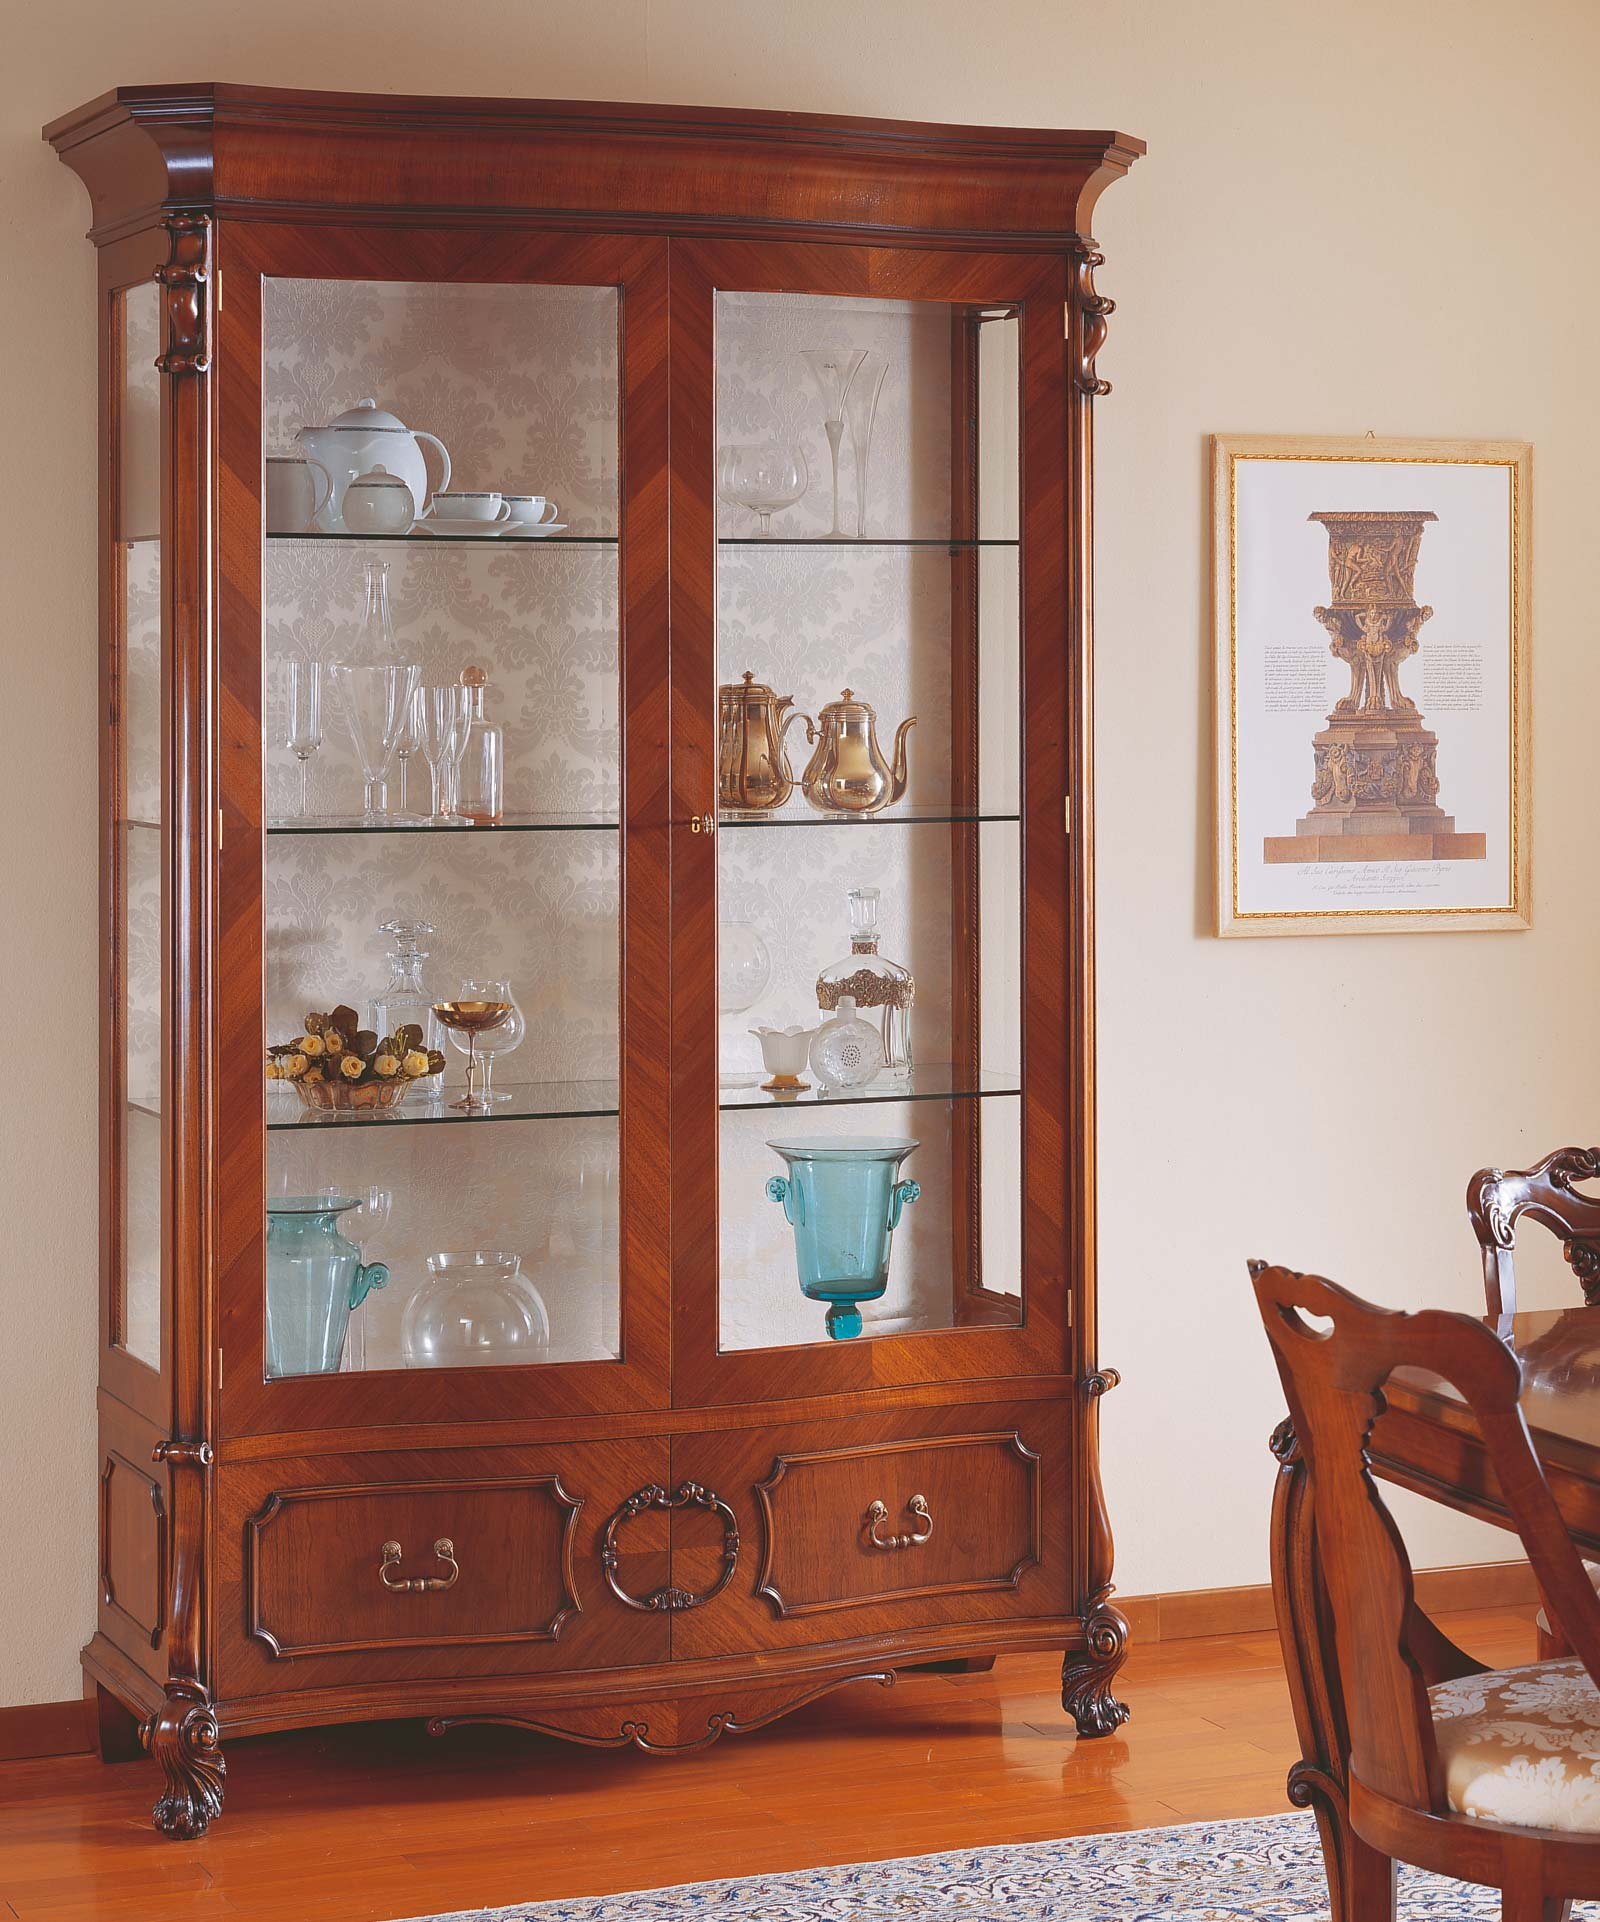 18th century siciliano glass showcase two doors vimercati classic furniture - Dining room showcase designs ...